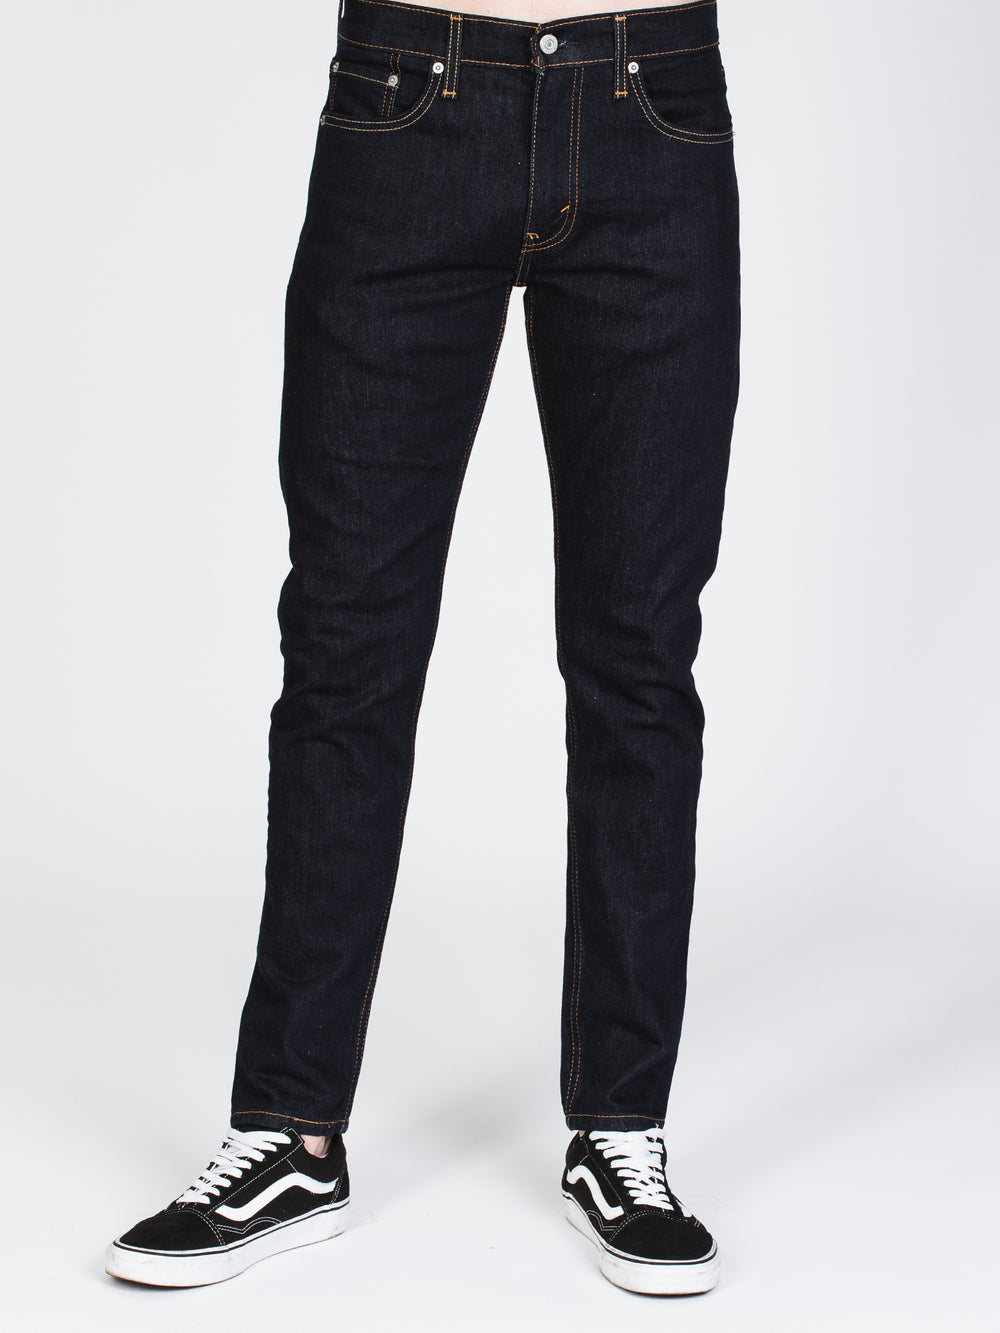 MENS 512 SLIM TAPER - DARK HOLLOW